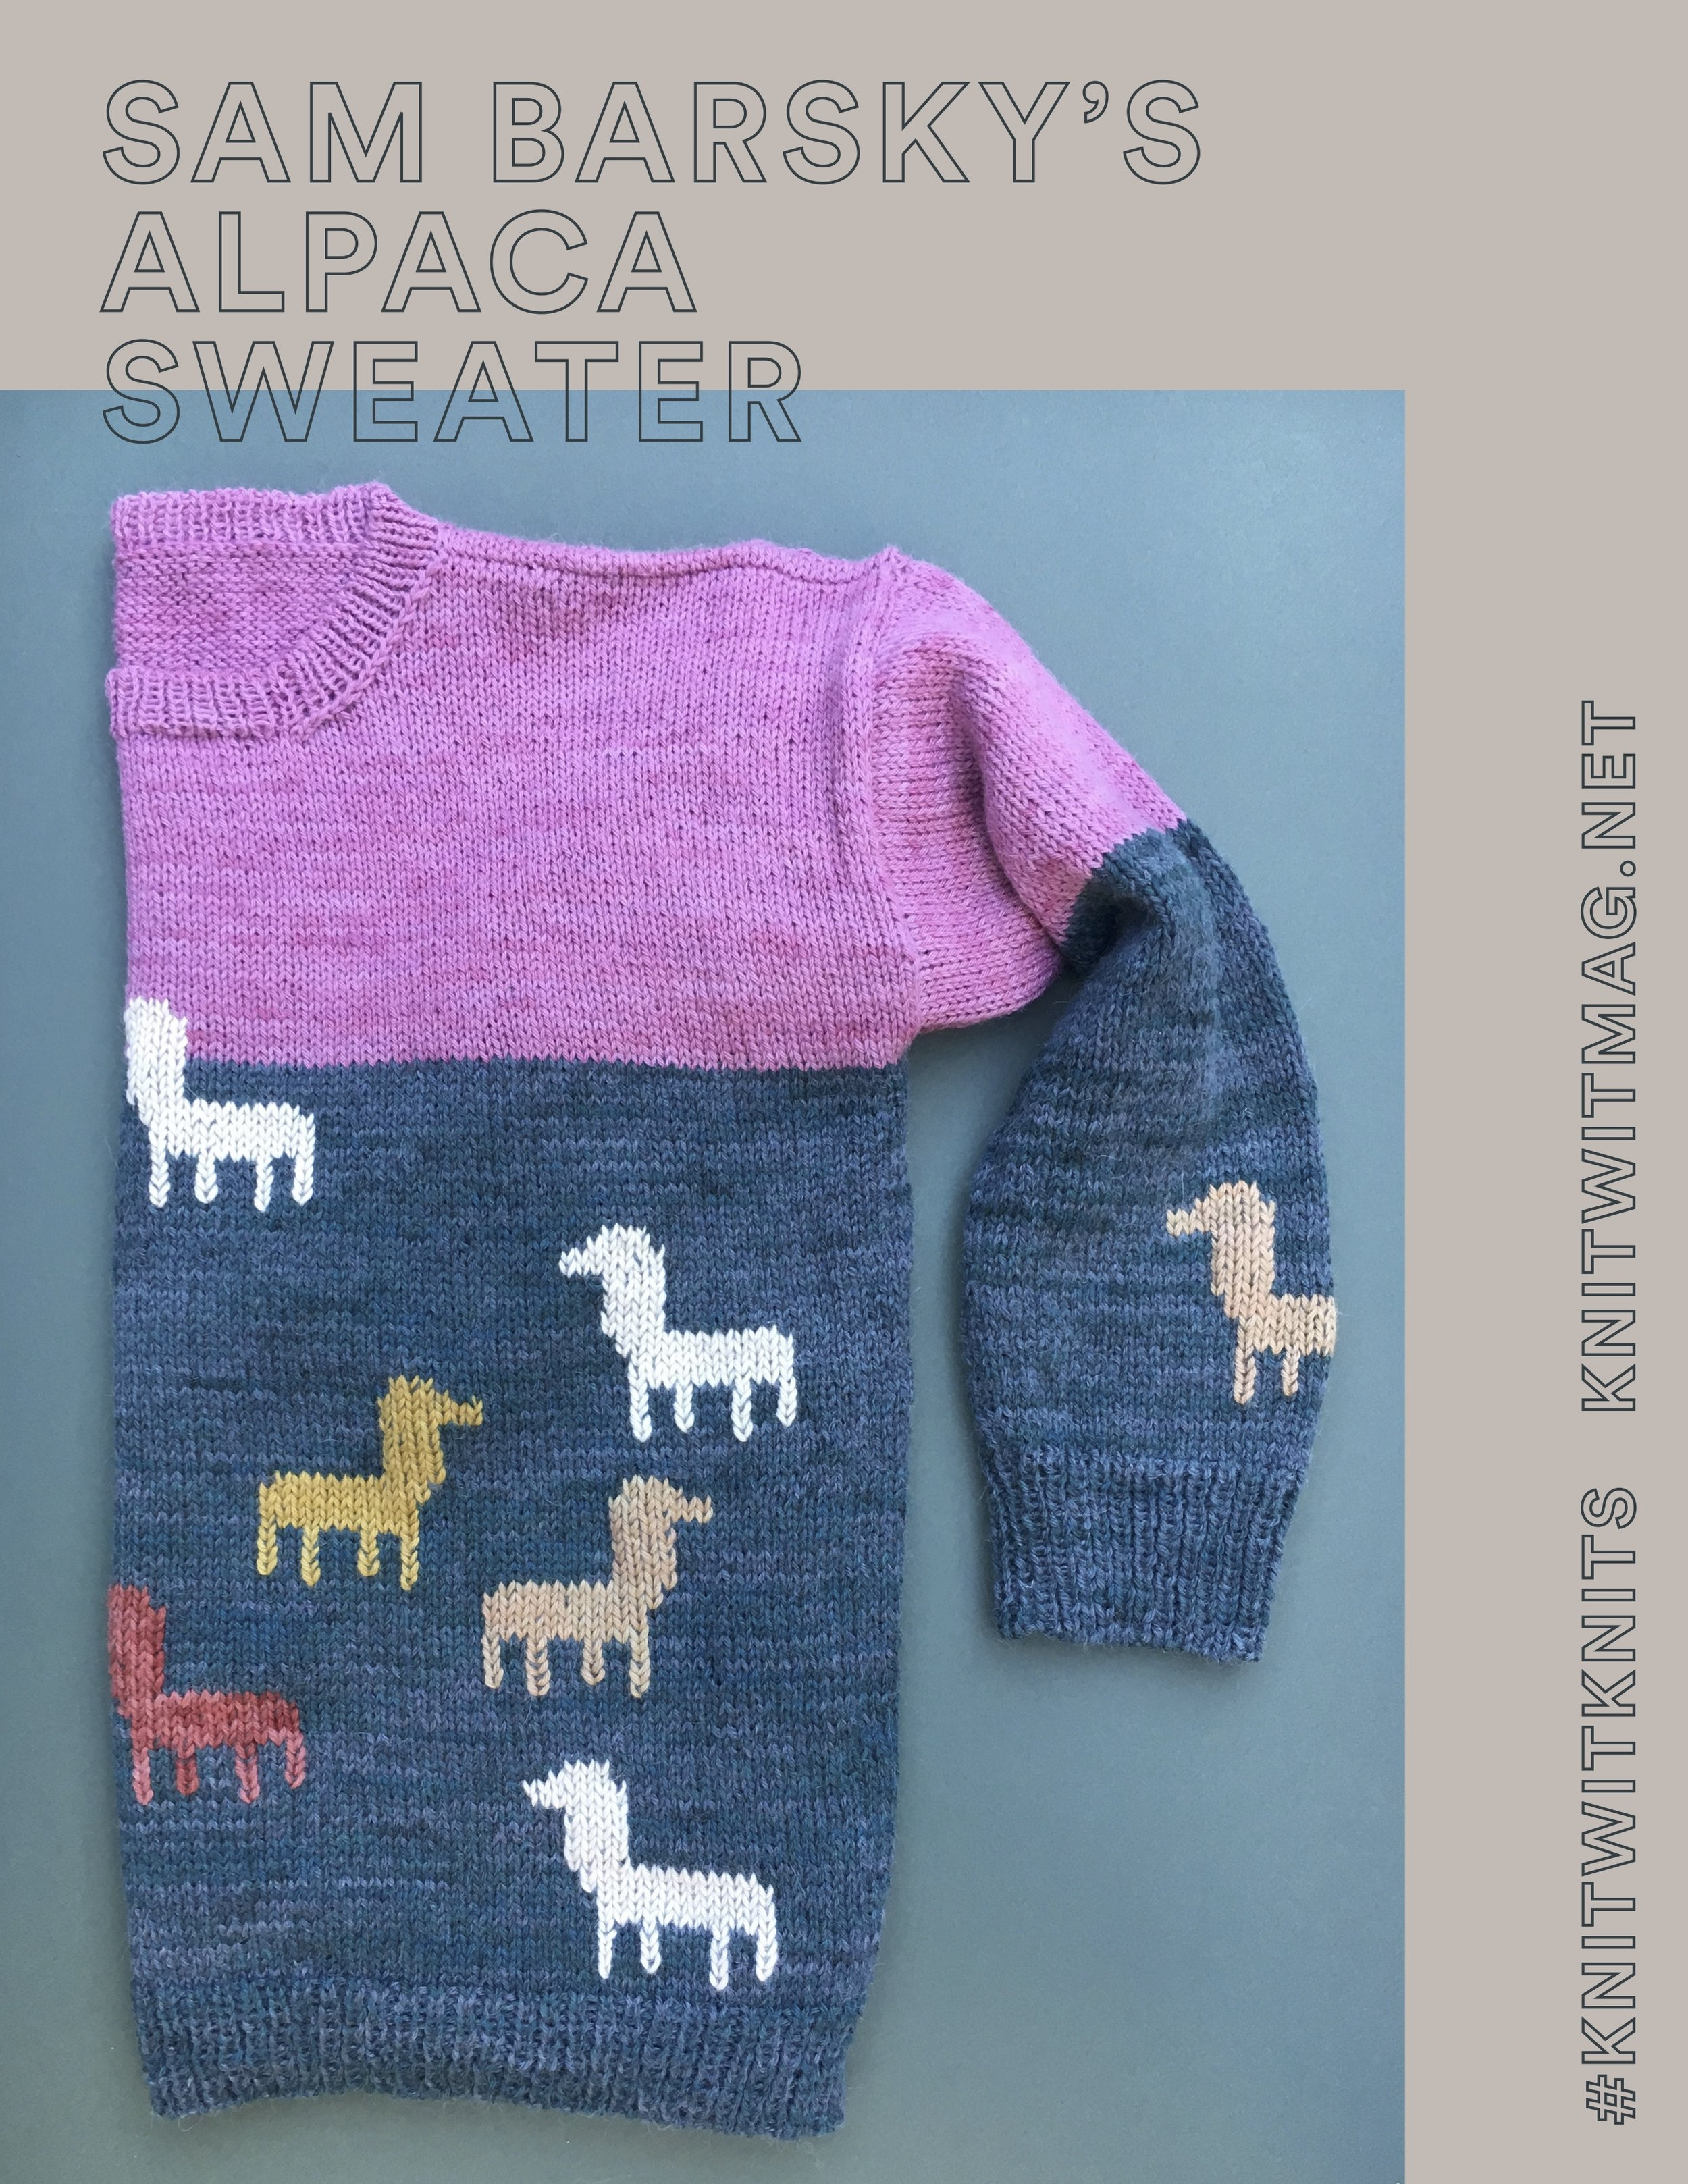 Knit Wit_Sam Barsky Alpaca Sweater.jpg